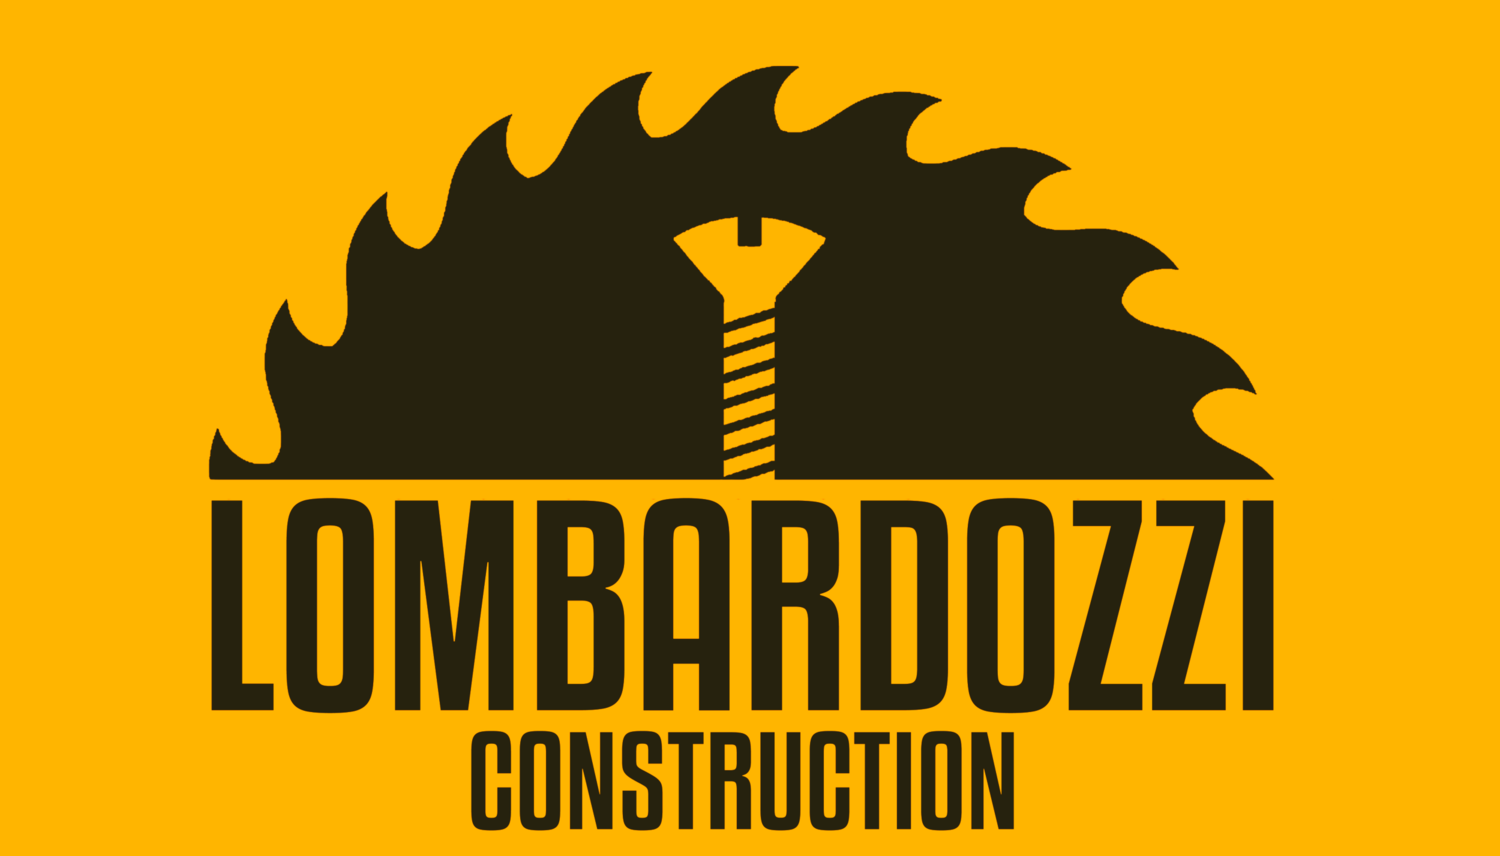 Lombardozzi Construction